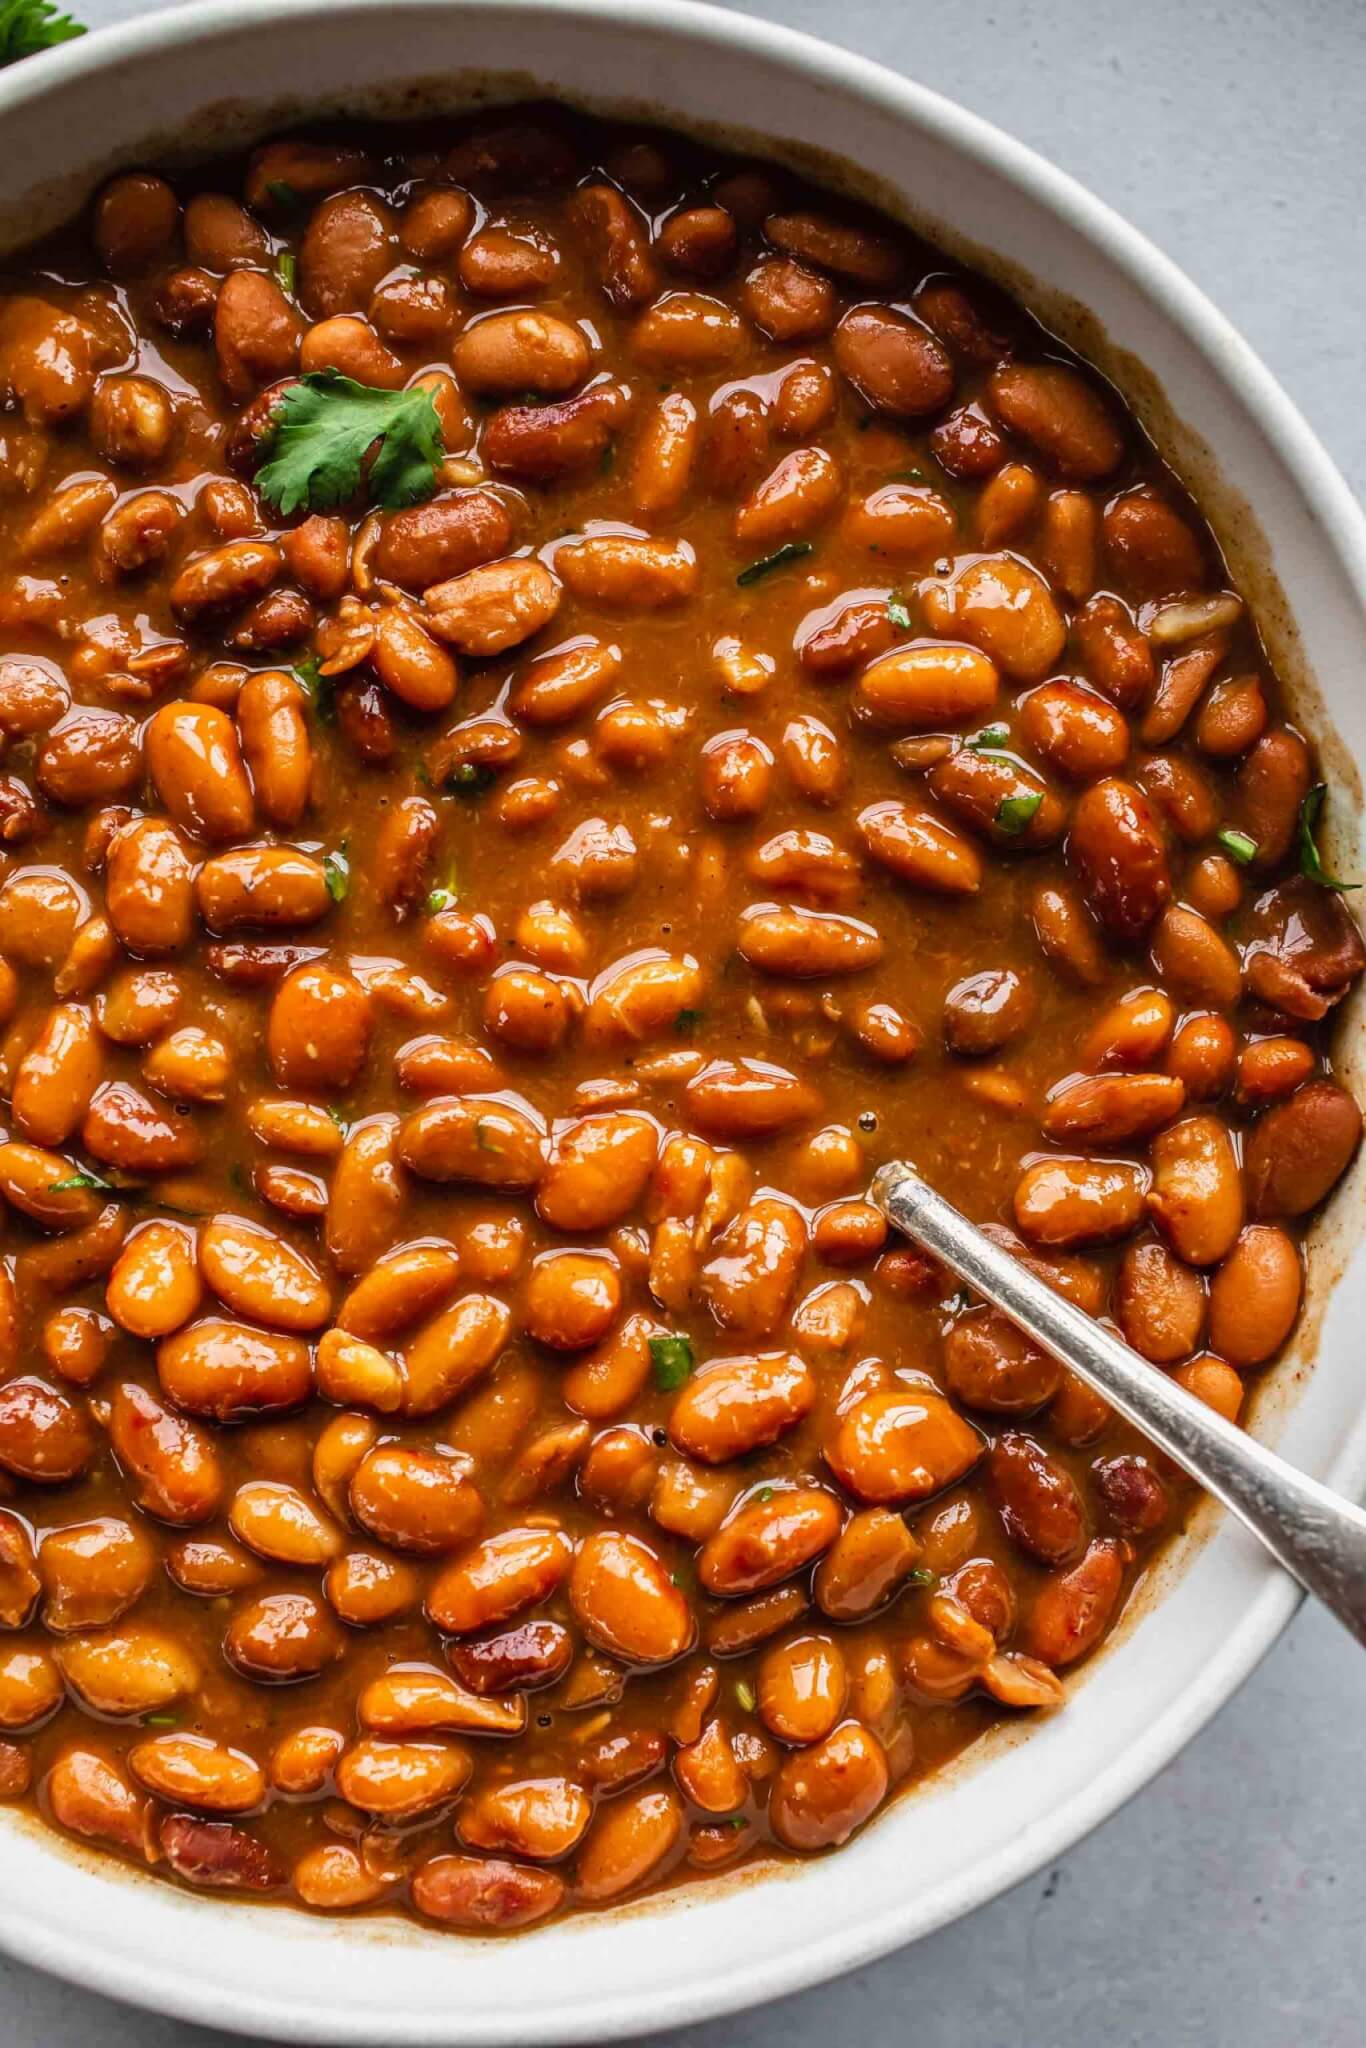 Overhead close up of pinto beans in white bowl with spoon.